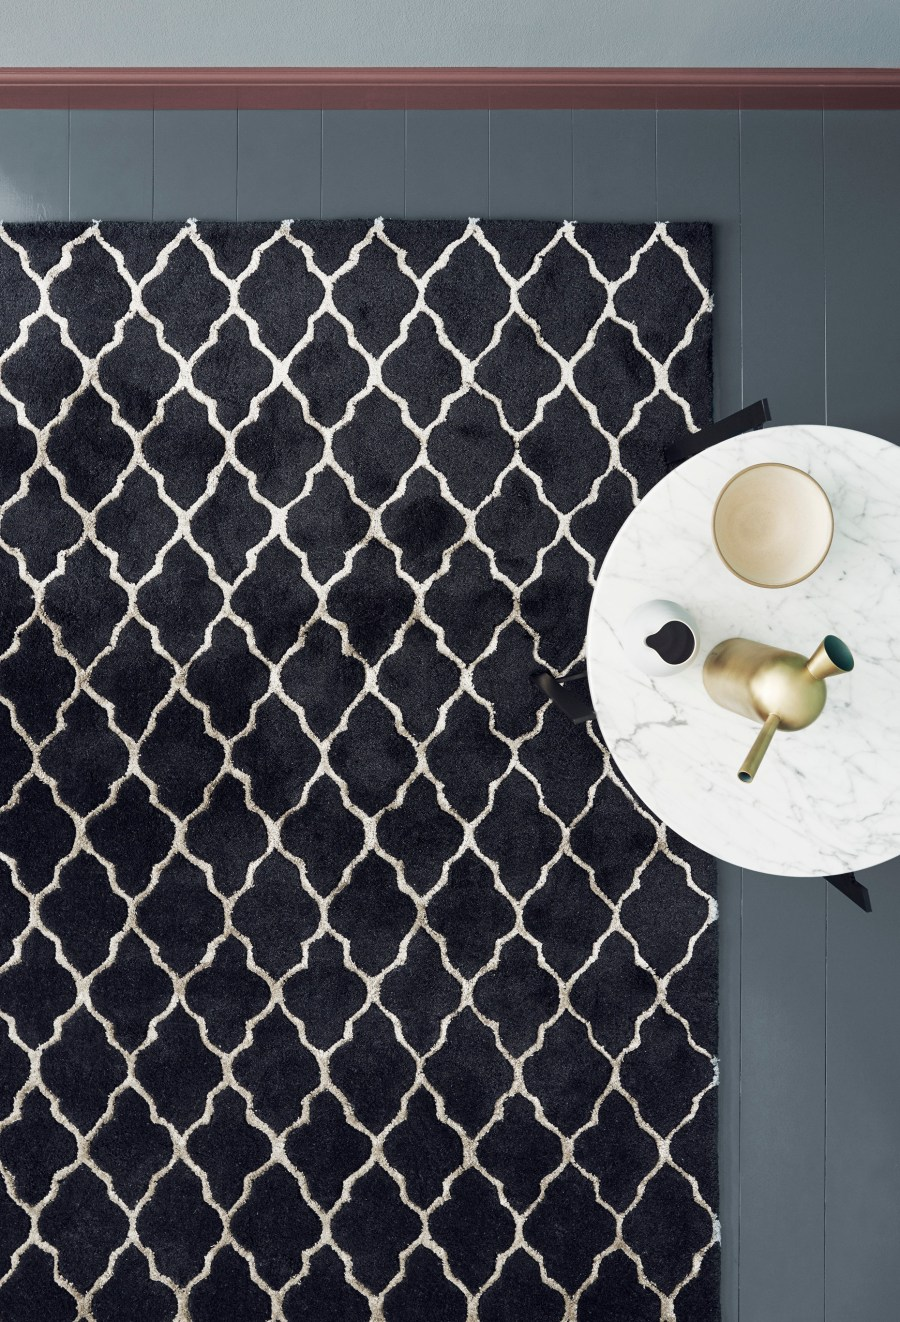 contemporary Scandinavian rugs from Linie Design at Woven